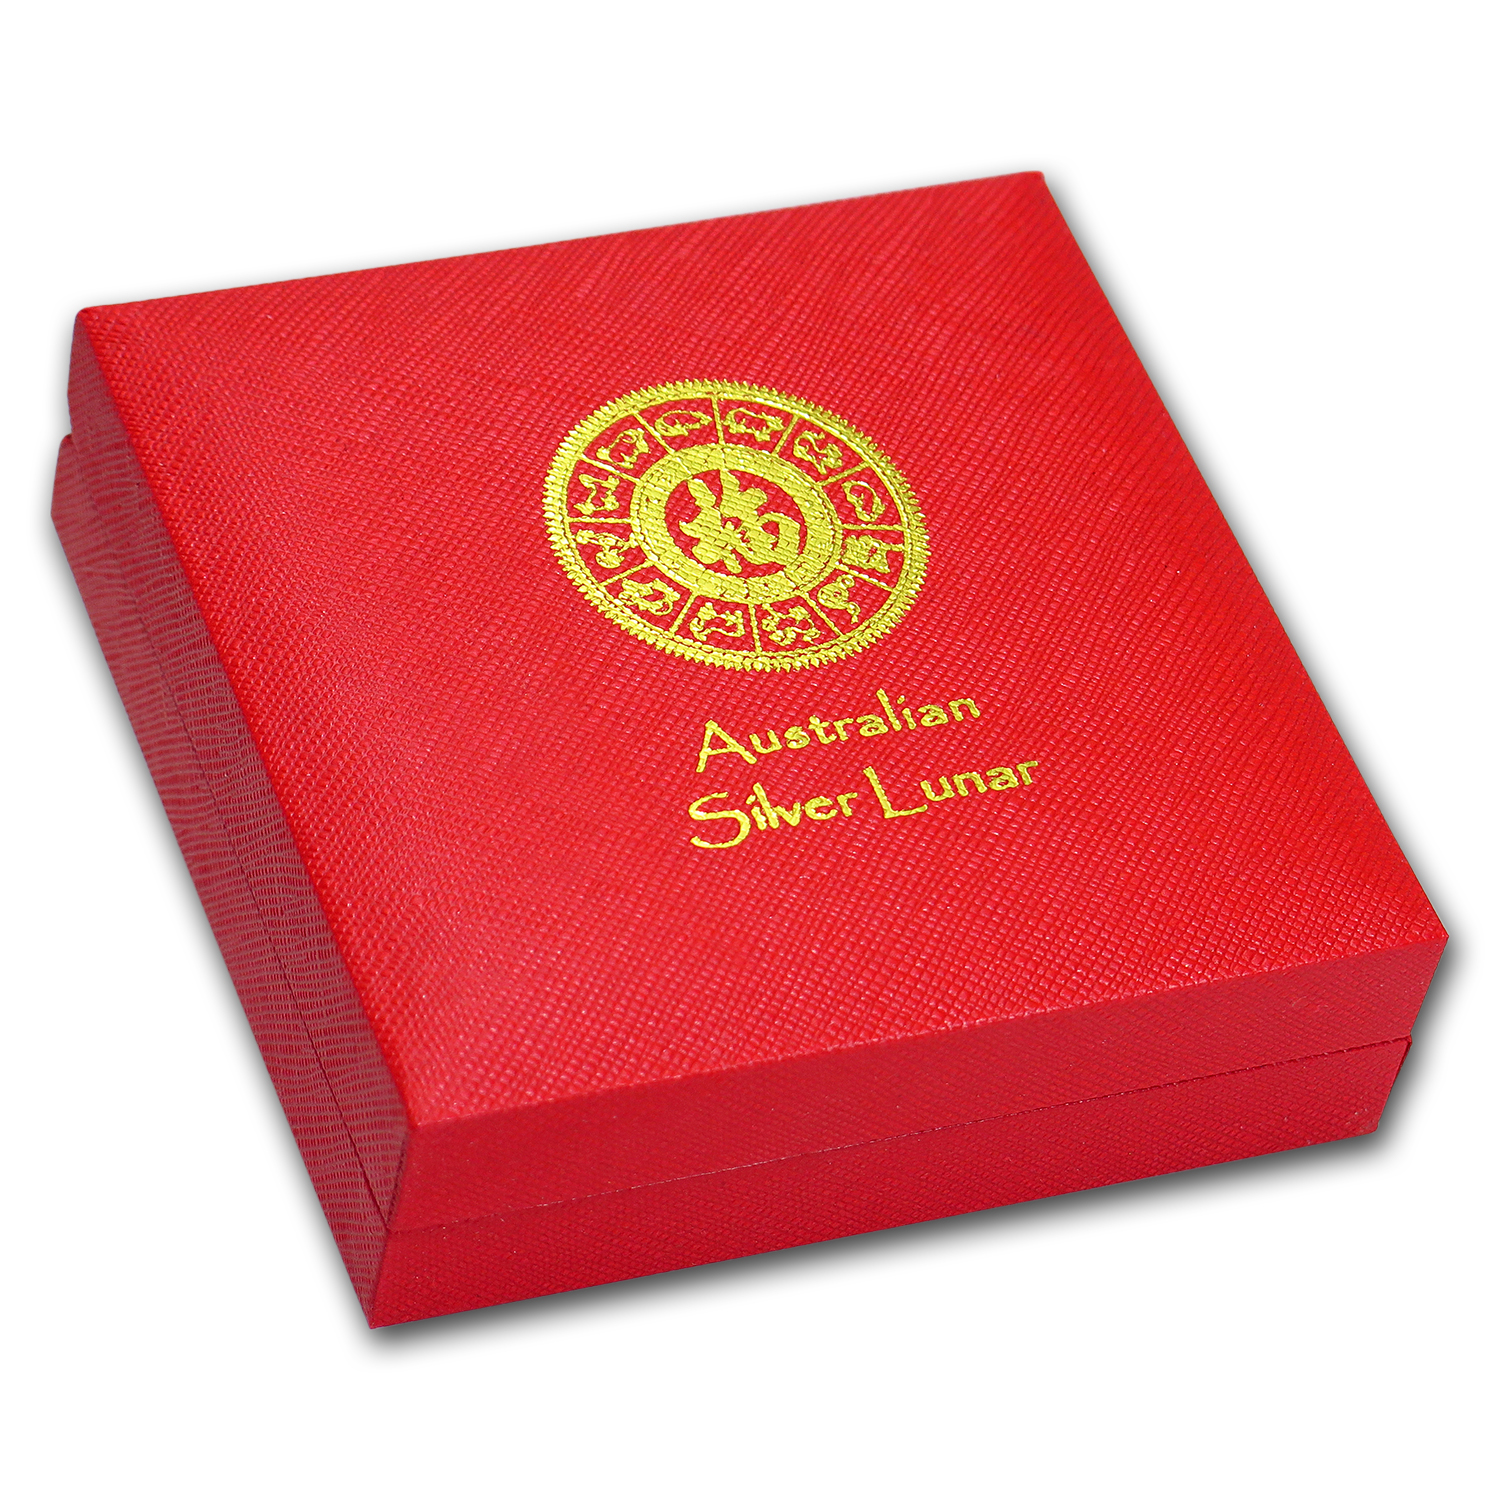 Lunar Series II (5 oz Silver) - Single Coin Red Presentation Box